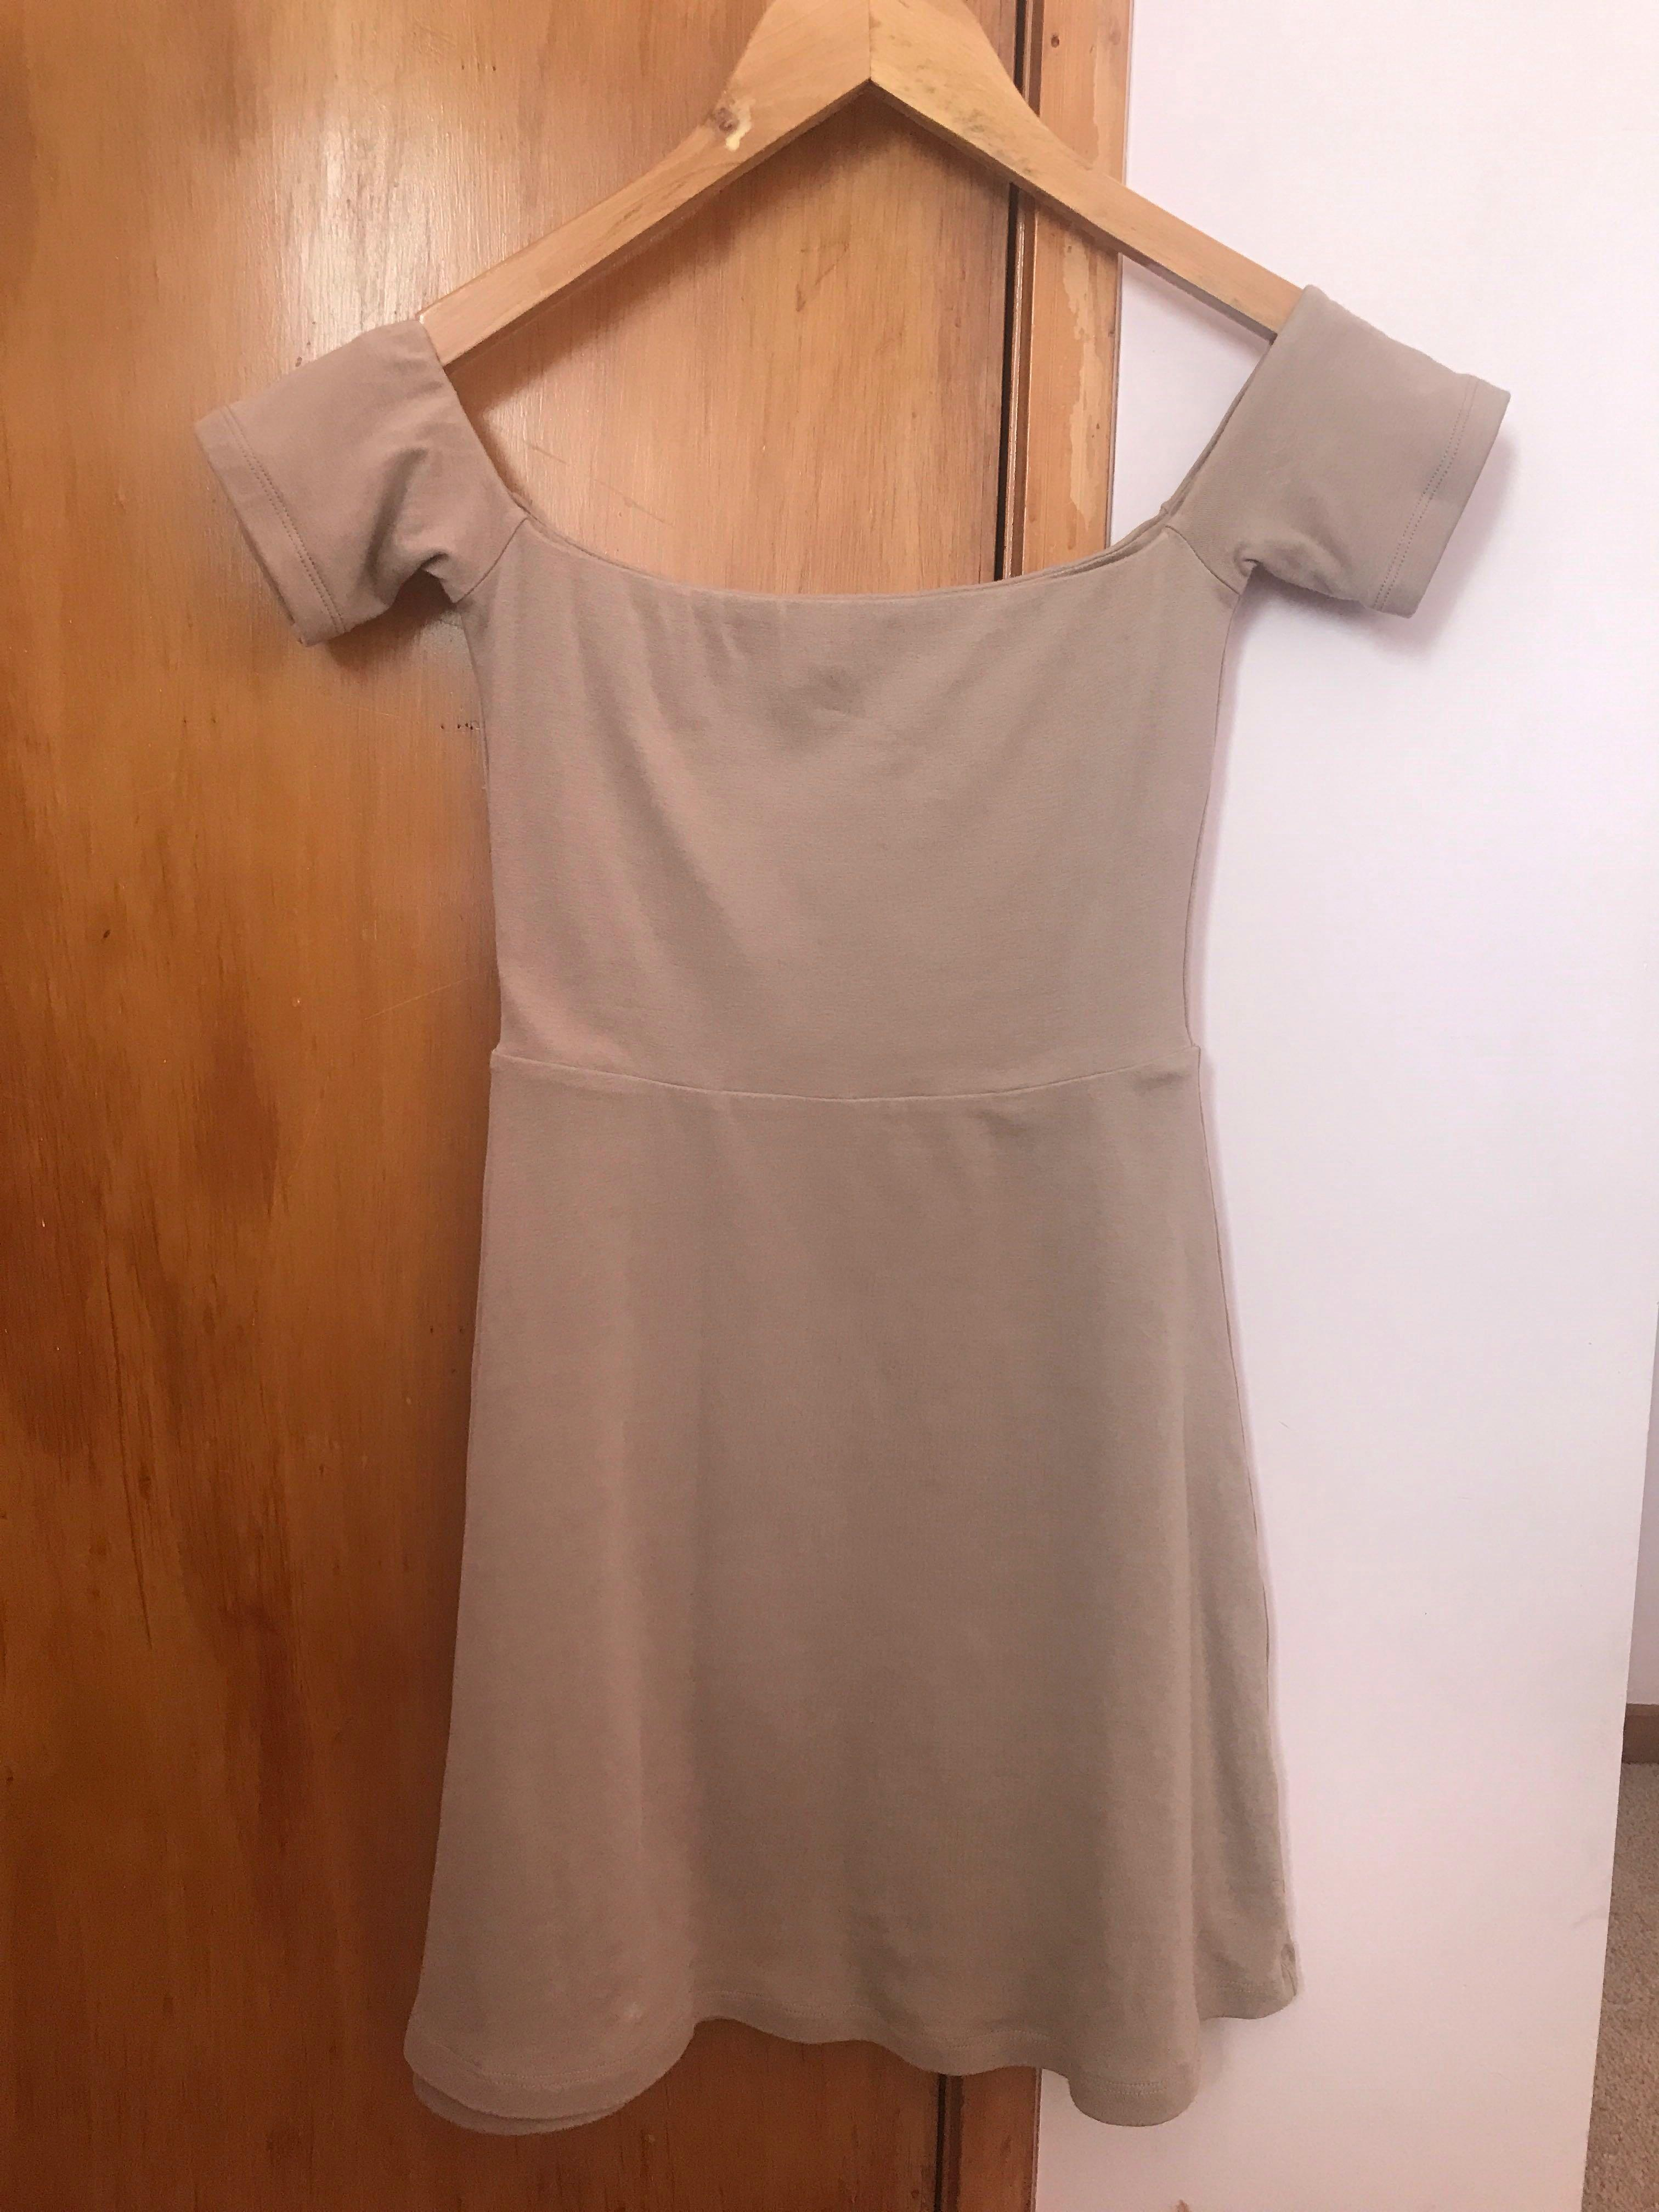 Cute Simple Off the Shoulder Dress - Size 6